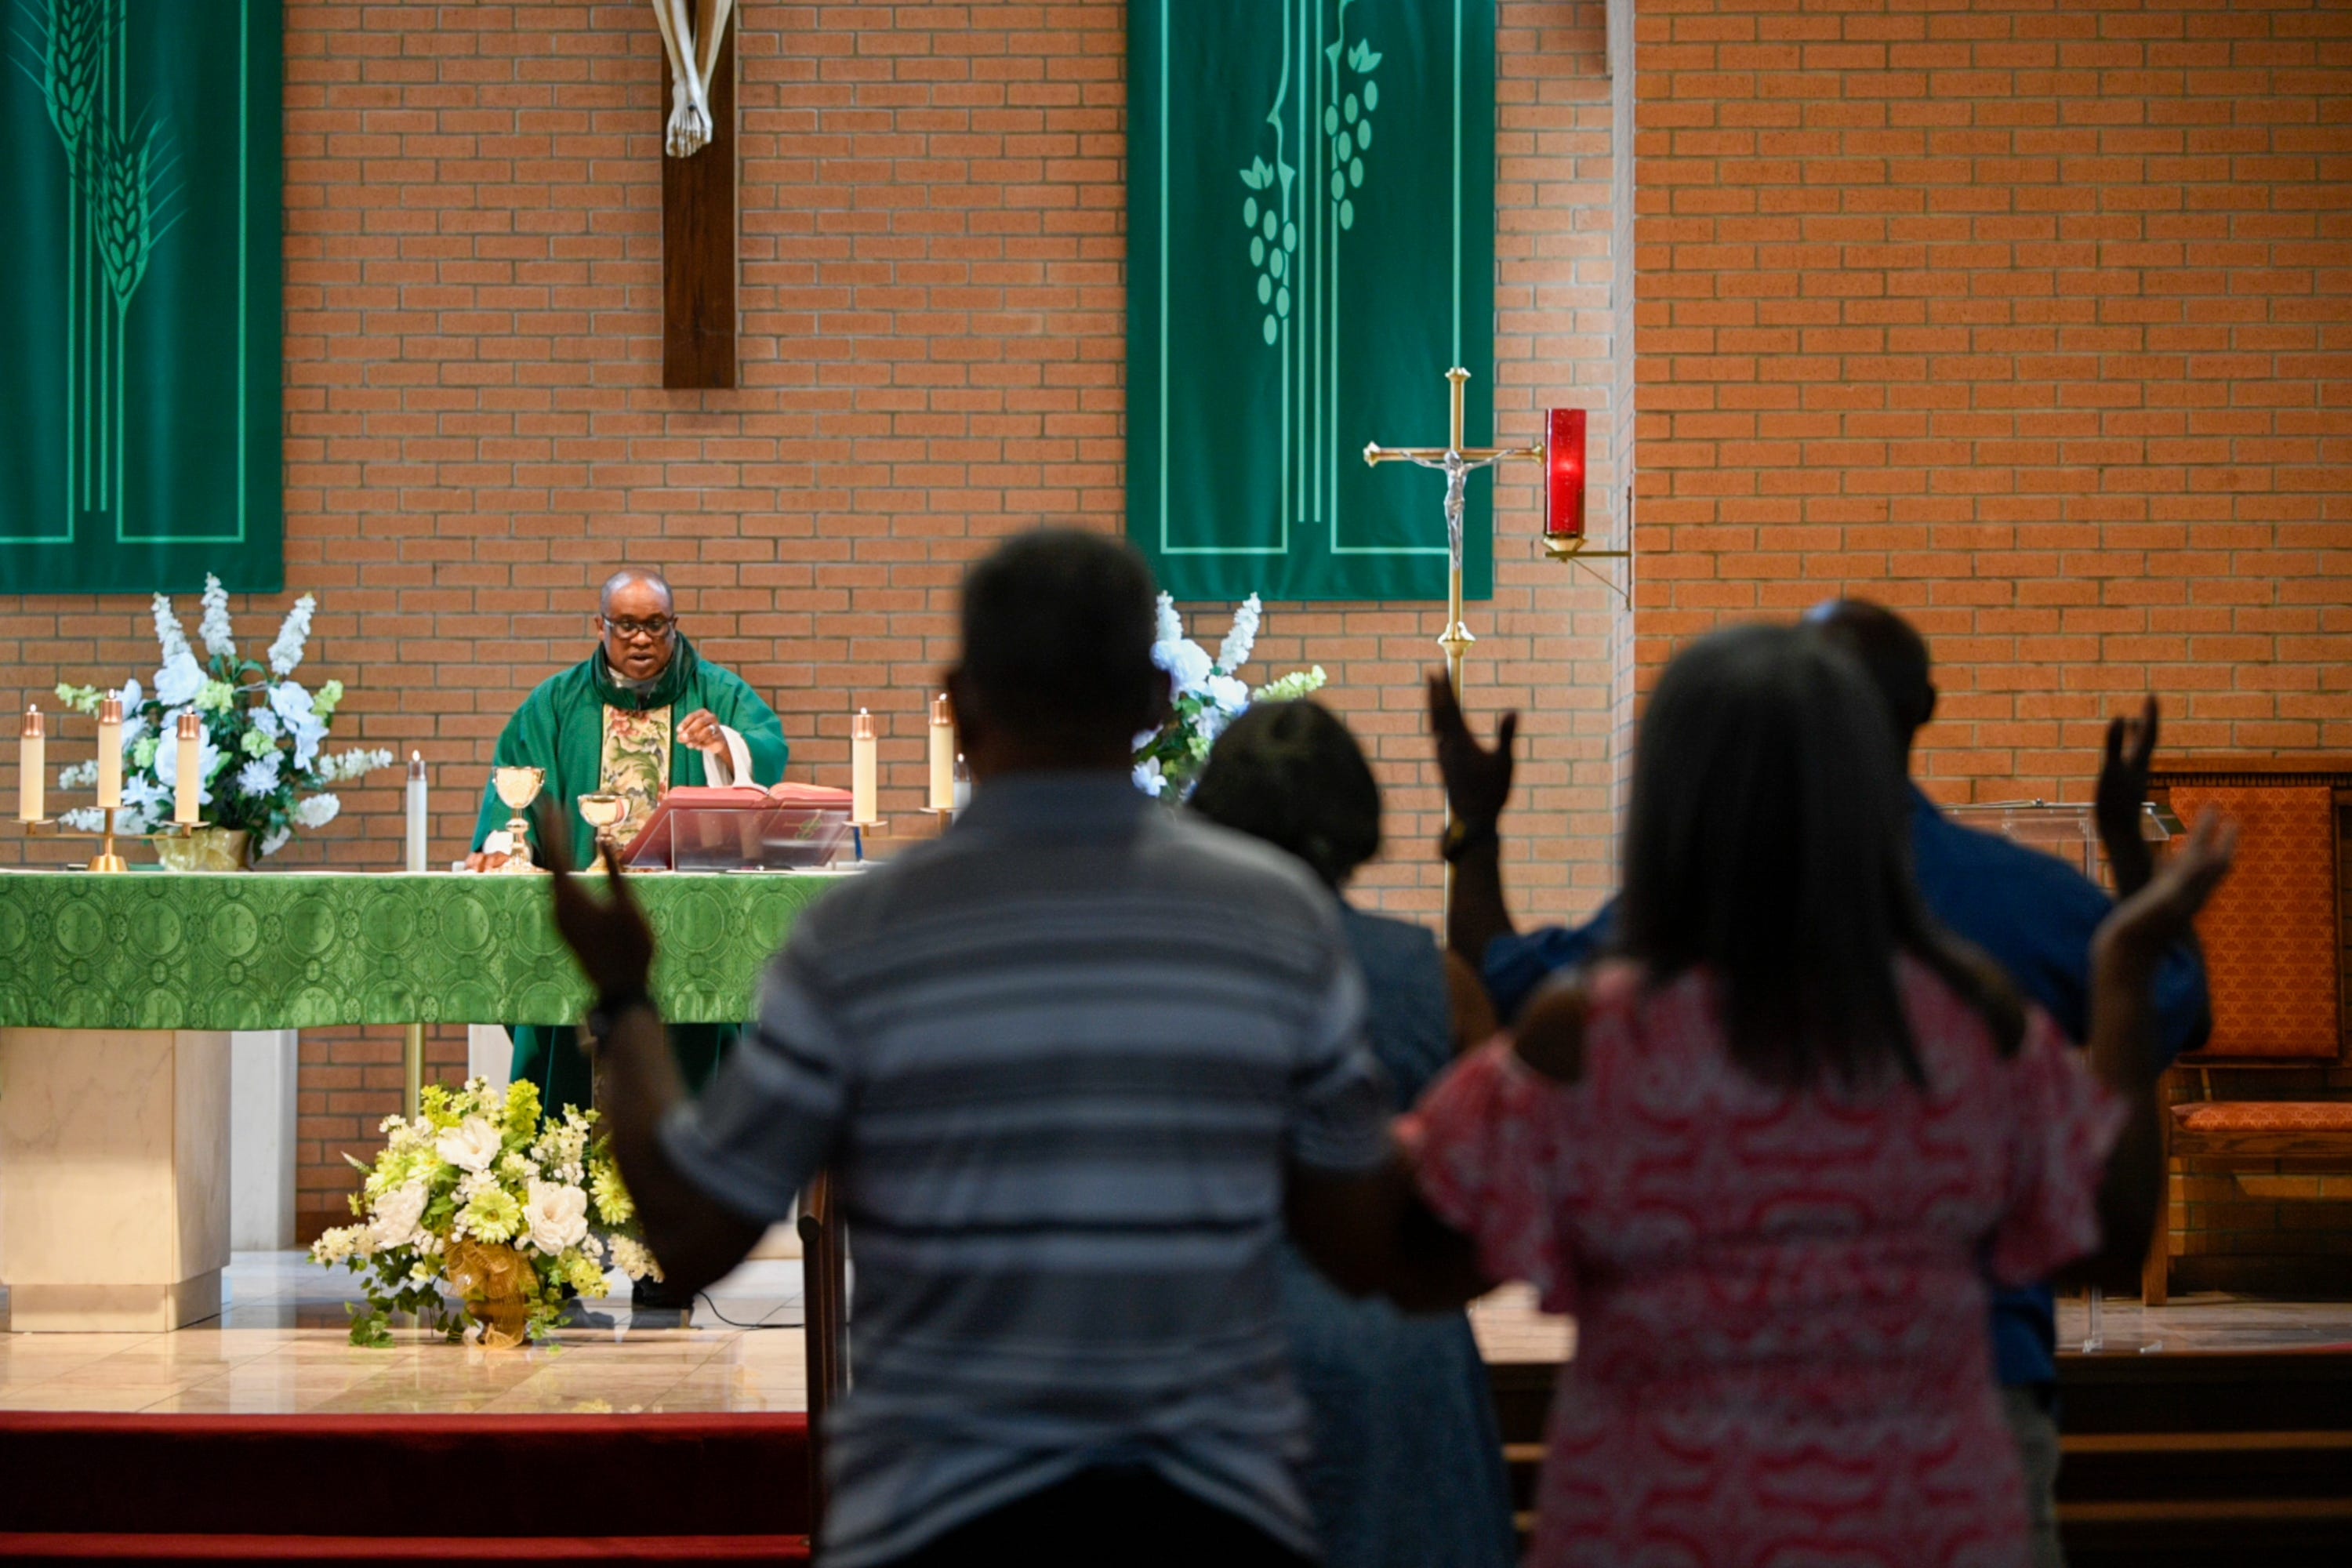 Parishioners stand in Our Lady of Grace Catholic Church in Reserve, La., during a sermon by the Rev. Christopher Chike Amadi.